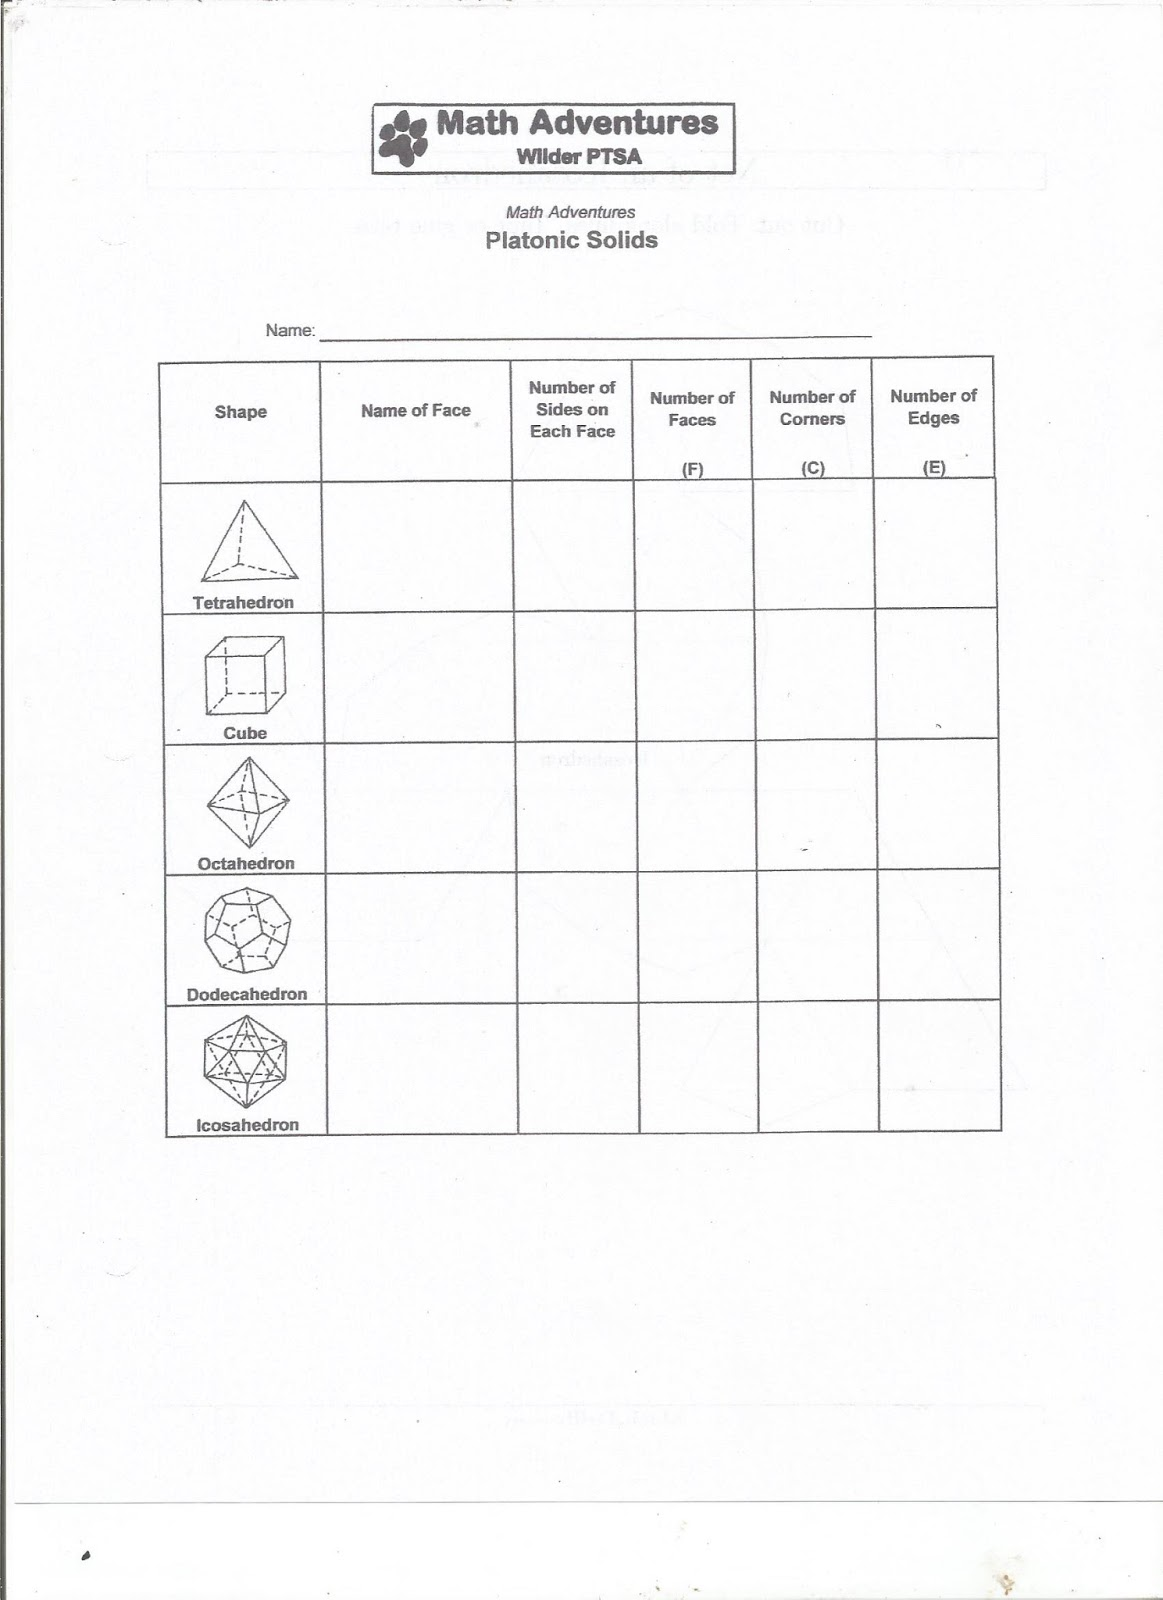 Here are the worksheets for today's activity: